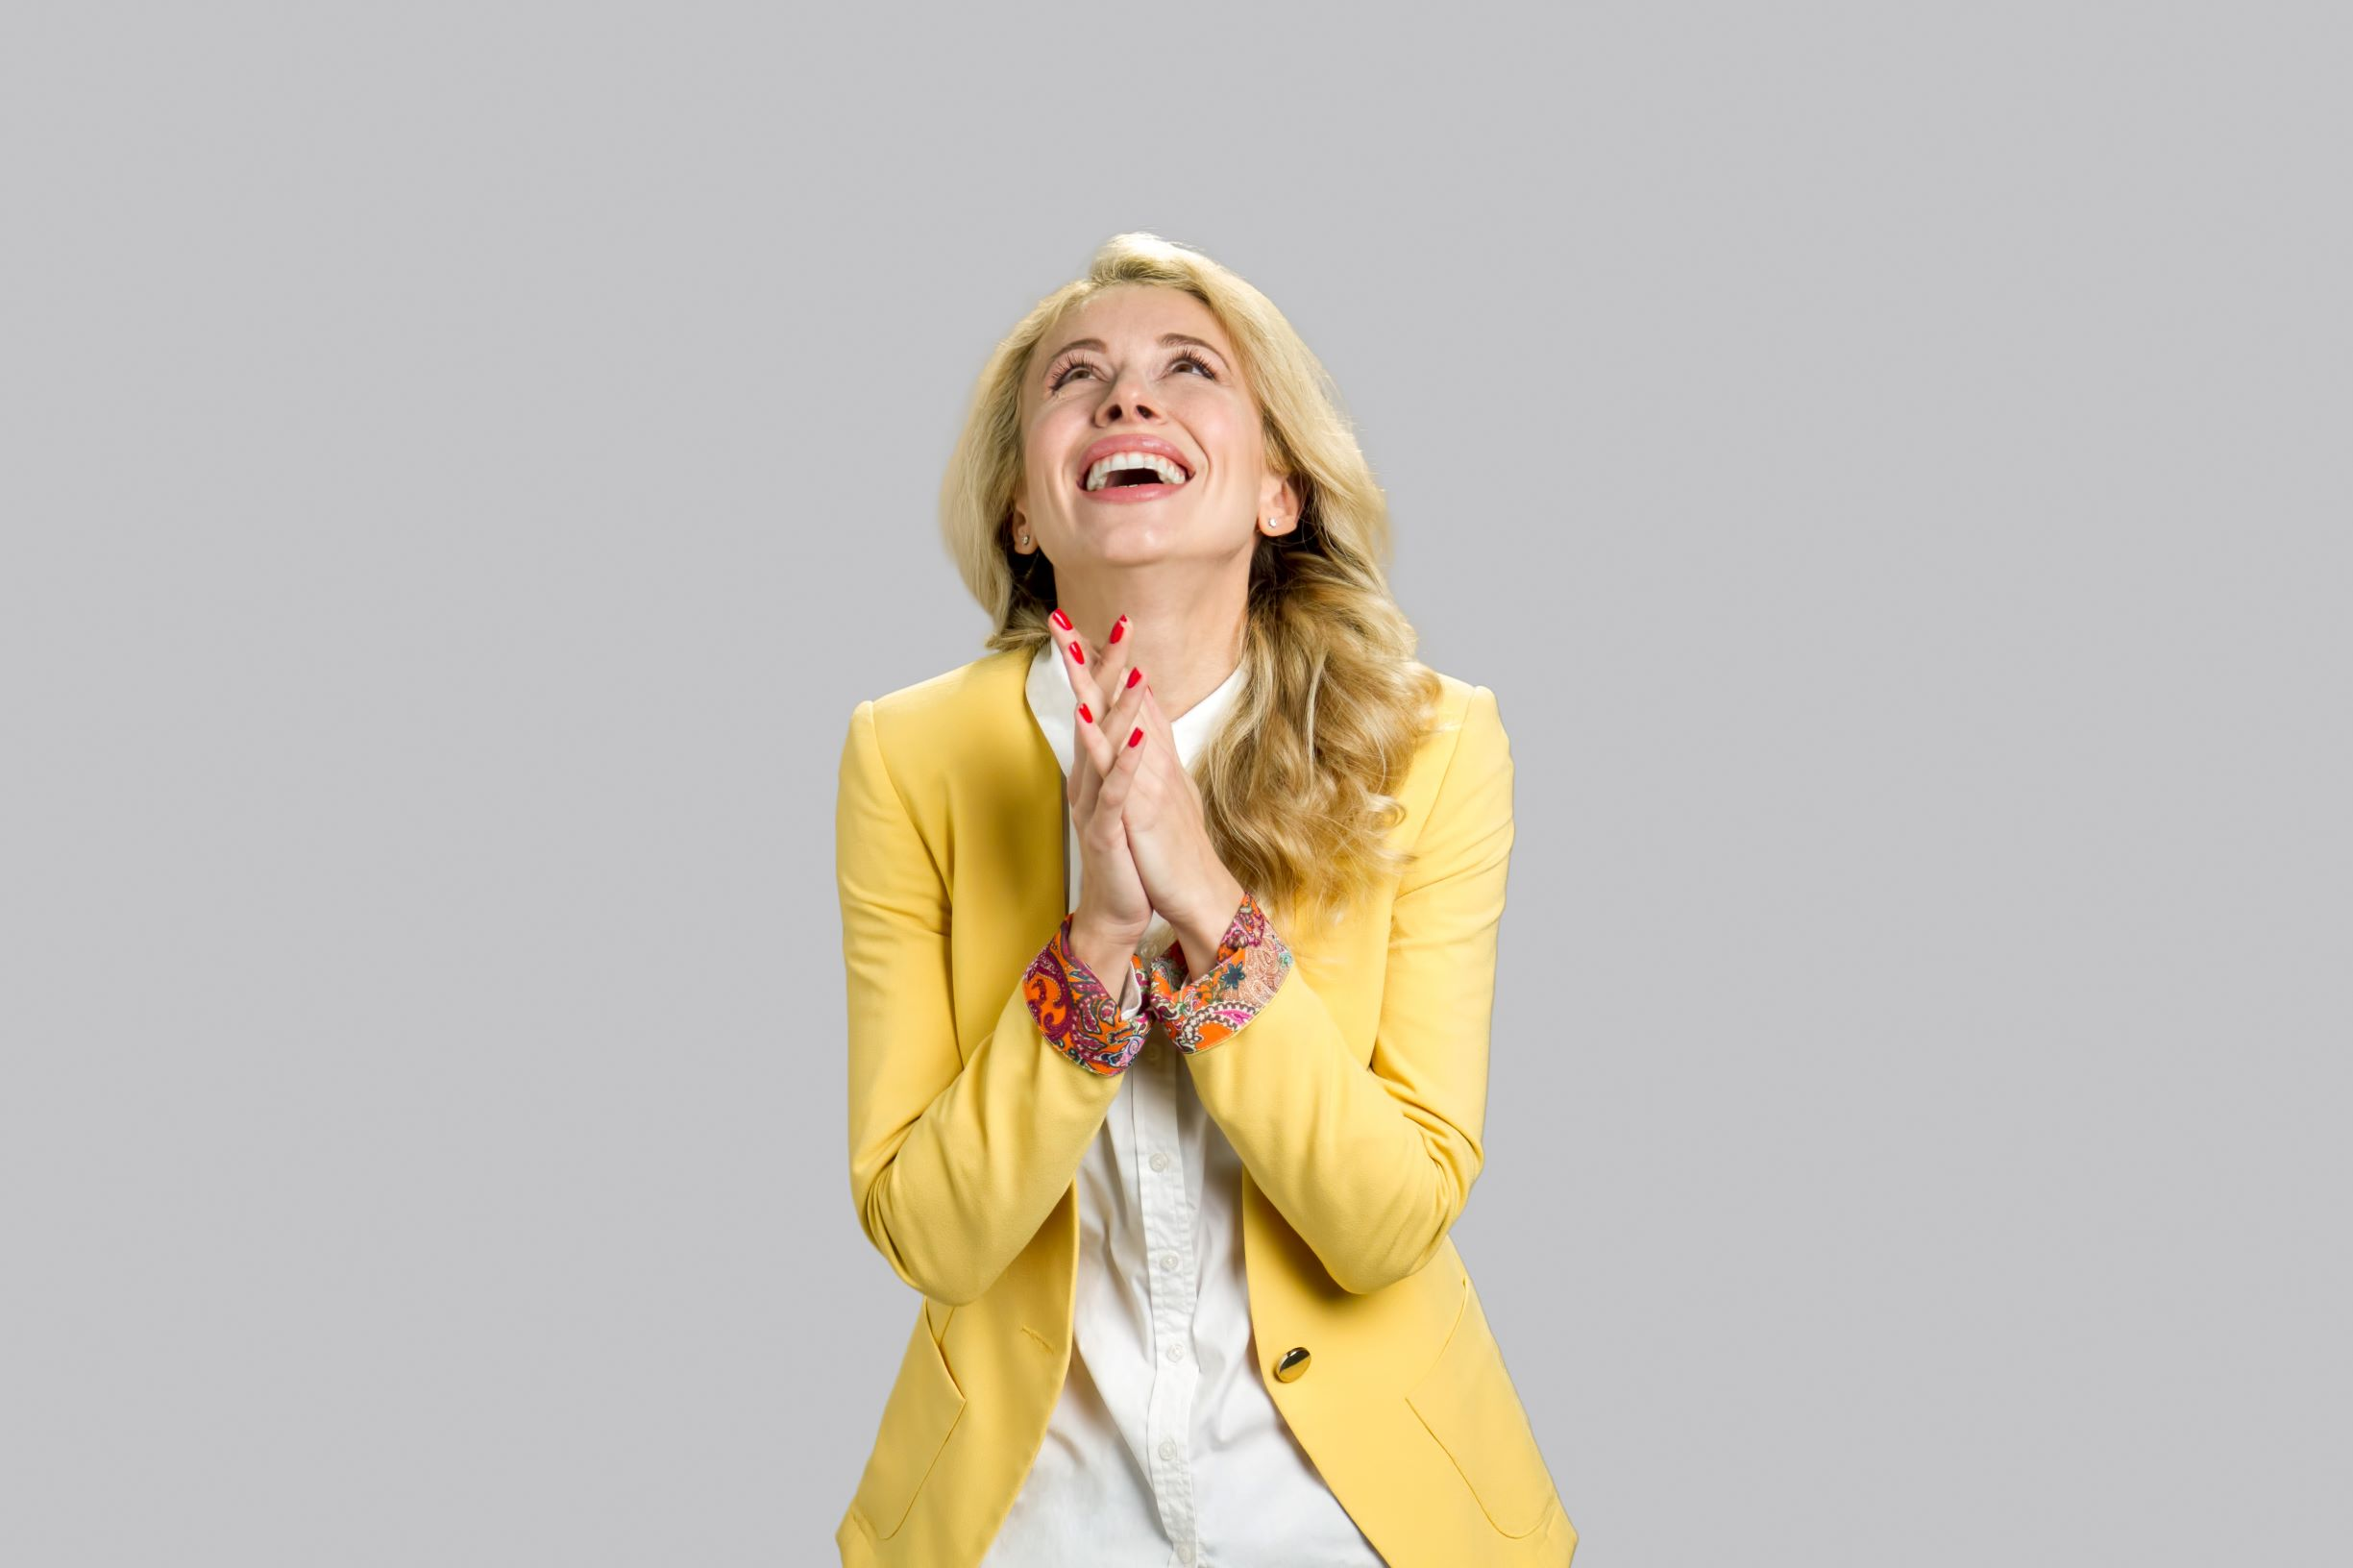 young woman happy gratitude blond hair yellow jacket.jpeg